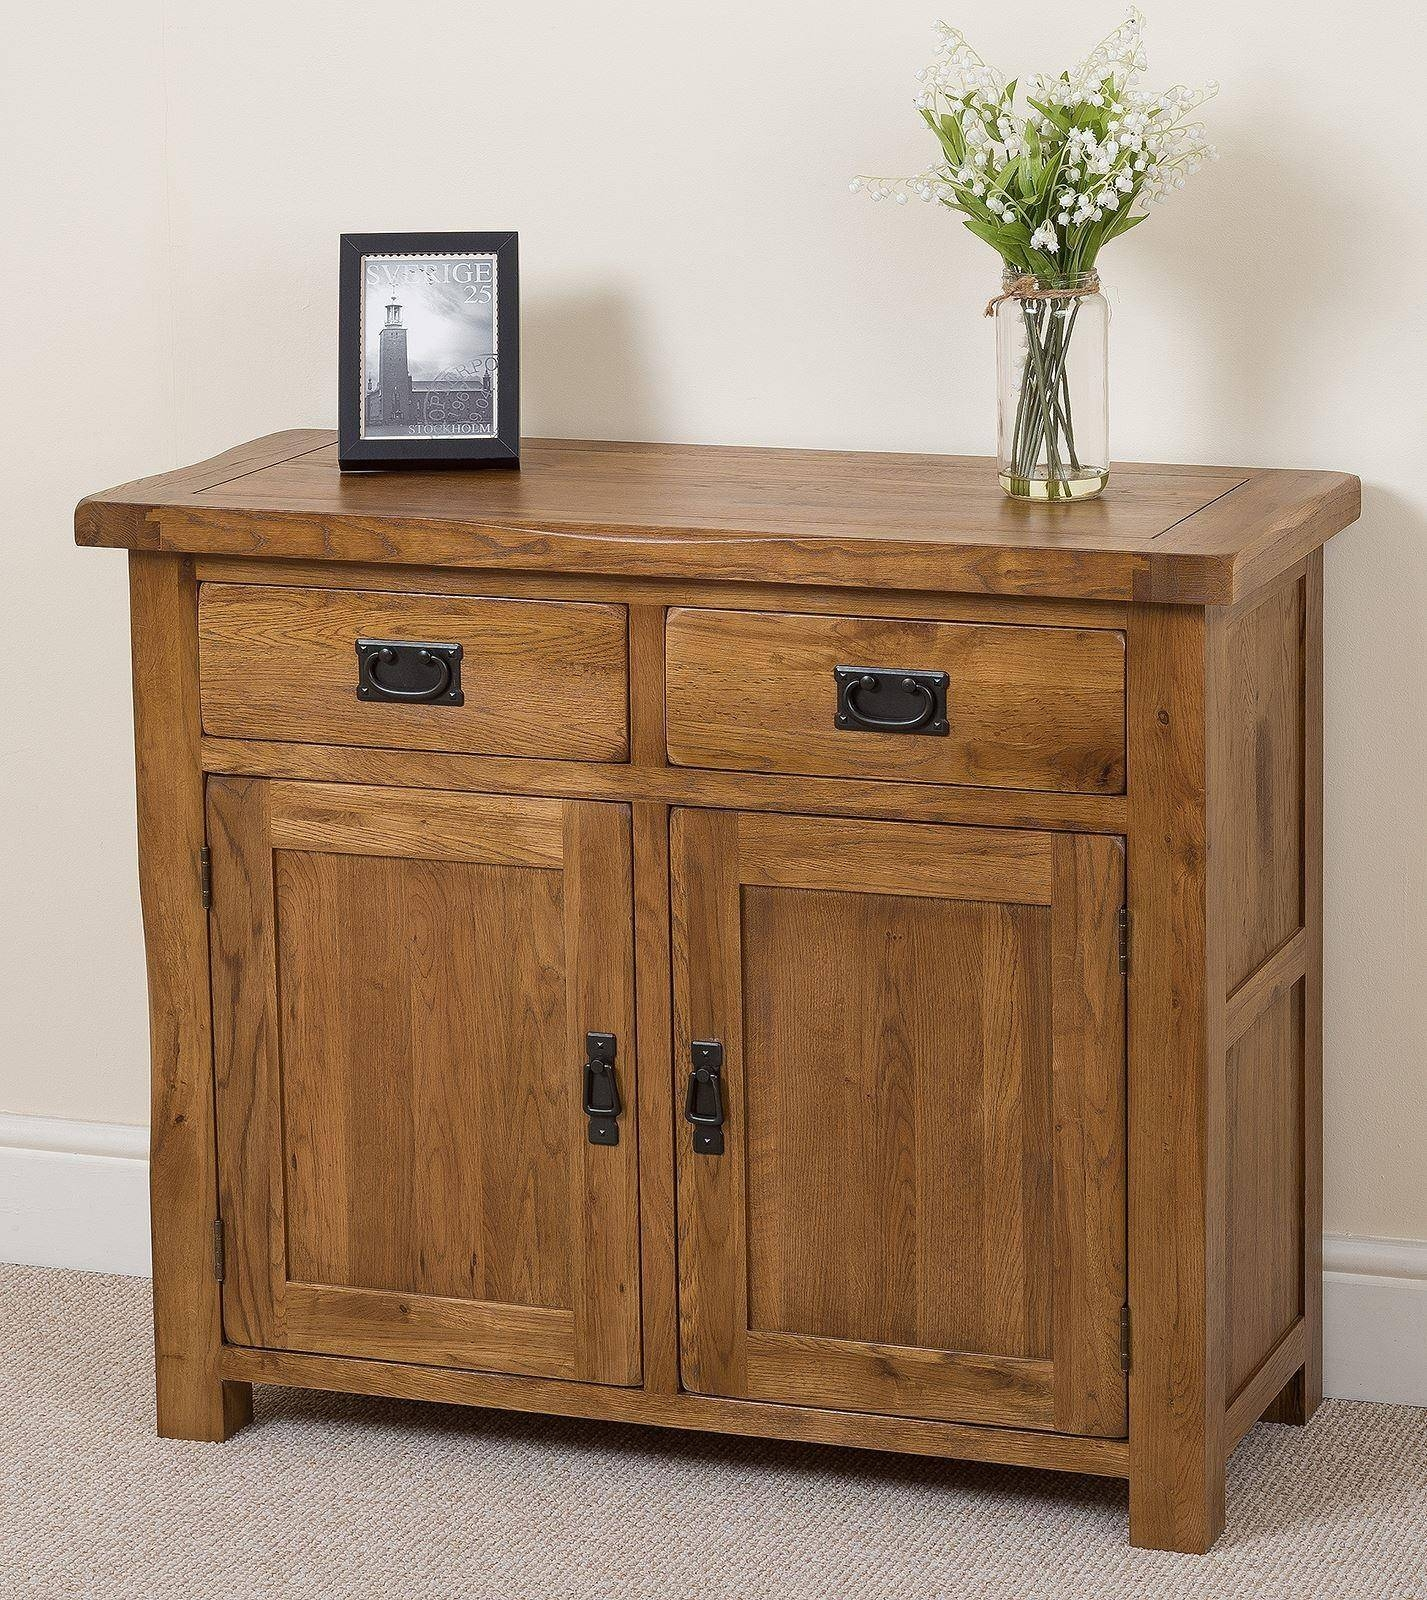 Cotswold Rustic Small Oak Sideboard | Free Uk Delivery Intended For Current Solid Oak Small Sideboards (View 3 of 15)